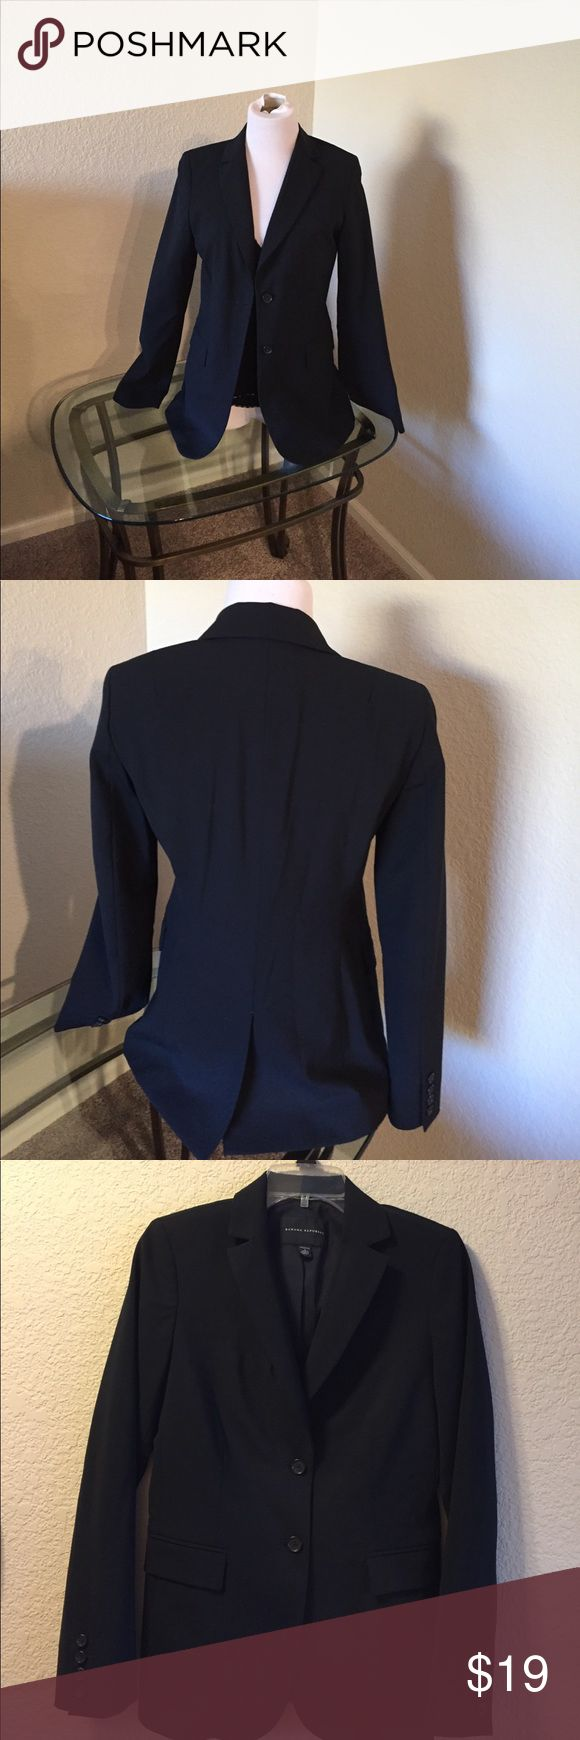 Banana Republic size 4 boyfriend jacket Size 4 black two button boyfriend jacket.  Banana Republic. Top of shoulder to bottom of the hem 26 1/2. In great used condition. Banana Republic Jackets & Coats Blazers